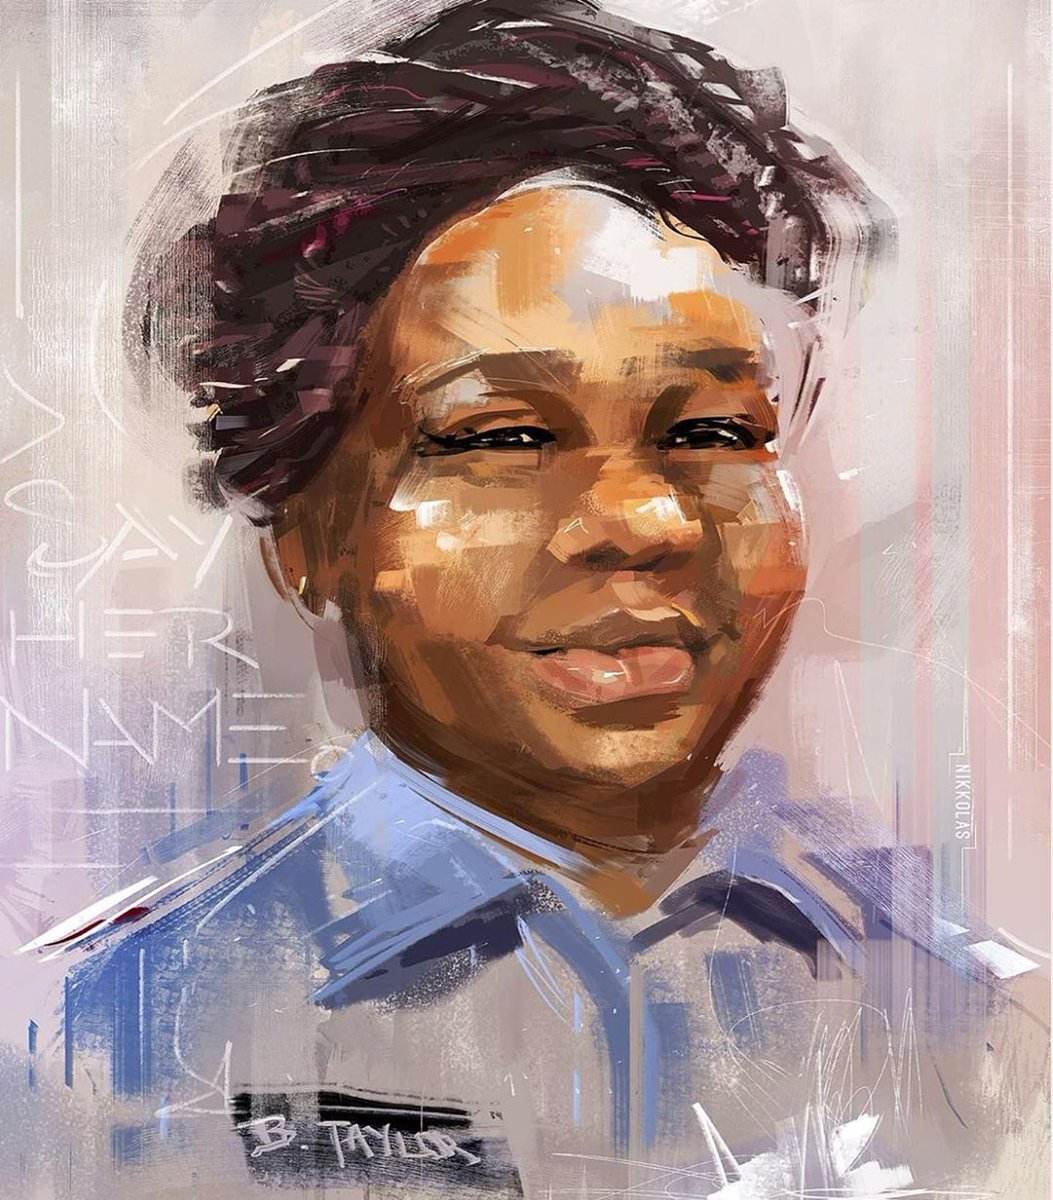 We are our sister's keeper. In honor of Breonna Taylor's 27th birthday, support her family's memorial fund. Find the link at obama.org/anguish-to-act…. #SayHerName Artwork: @4NIKKOLAS